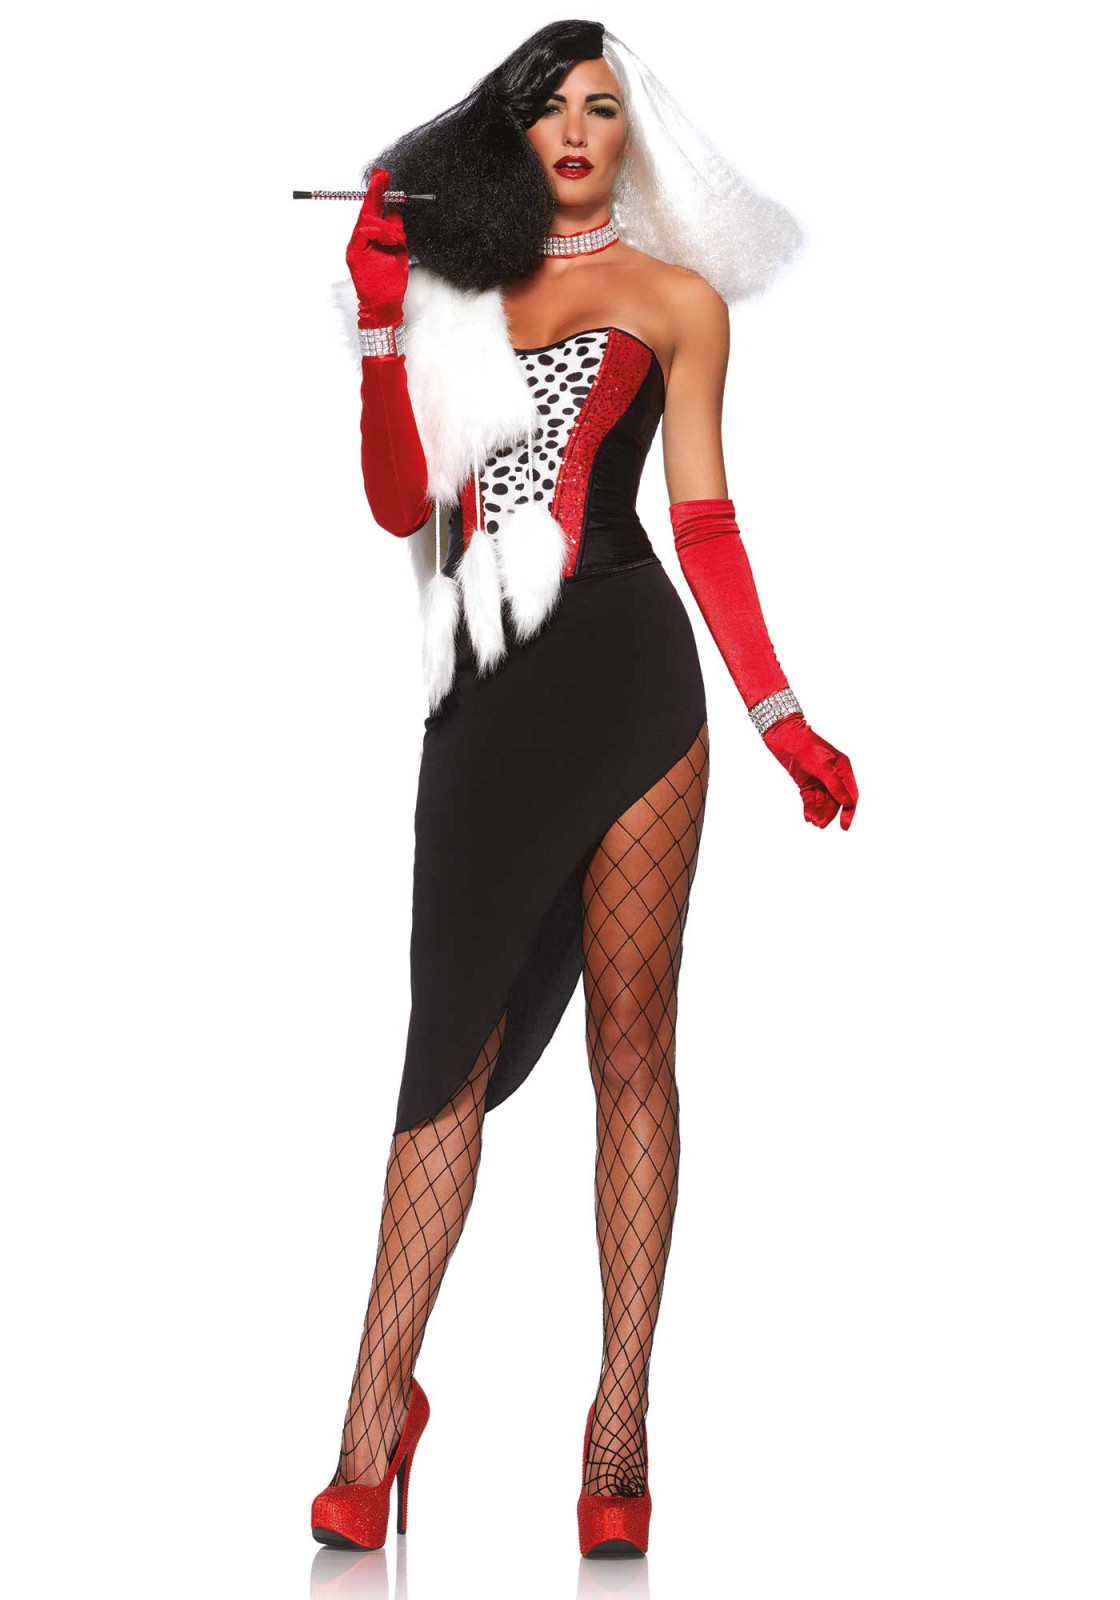 You give a new meaning to the word sneaky. Everybody will tremble in fear of you. This 5PC cruella costume includes spotted bustier with sequin detail, asymmetrical skirt, faux fur wrap, faux rhinestone choker necklace and wrist cuffs. The pantyhose, gloves and wig are not included. The skirt length measured in from the short side is 35 cm (Size Small).